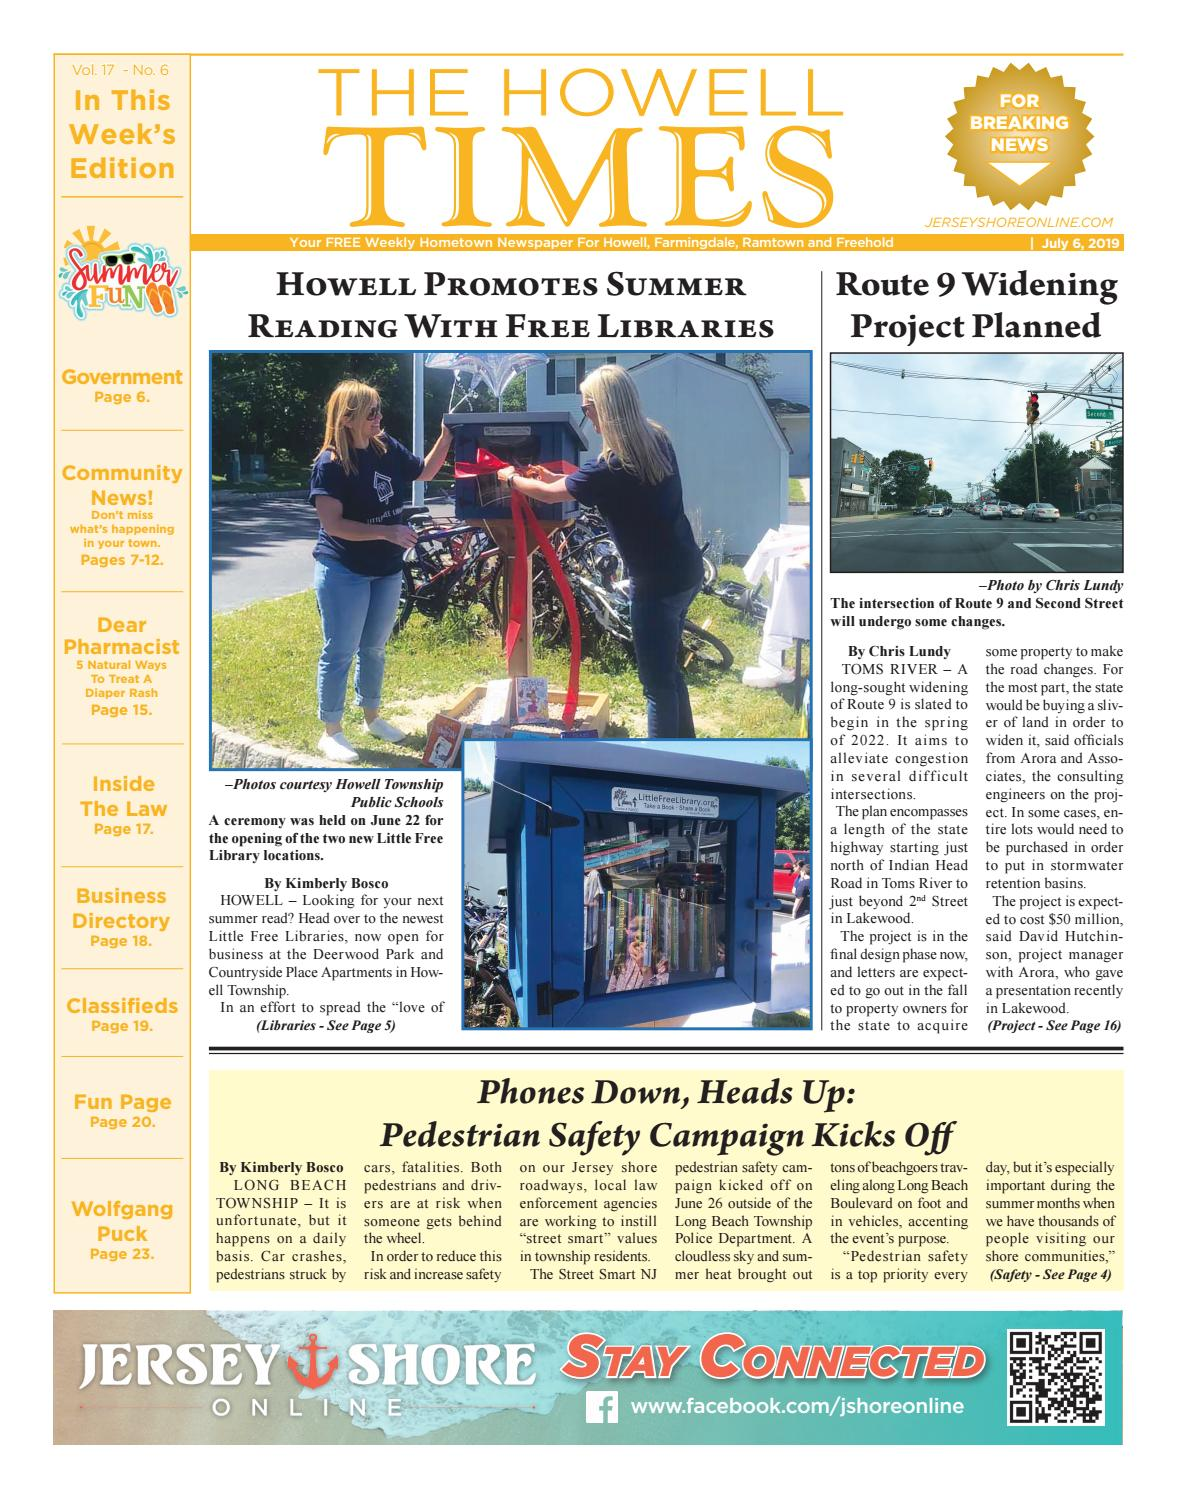 2019-07-06 - The Howell Times by Micromedia Publications/Jersey Shore  Online - issuu